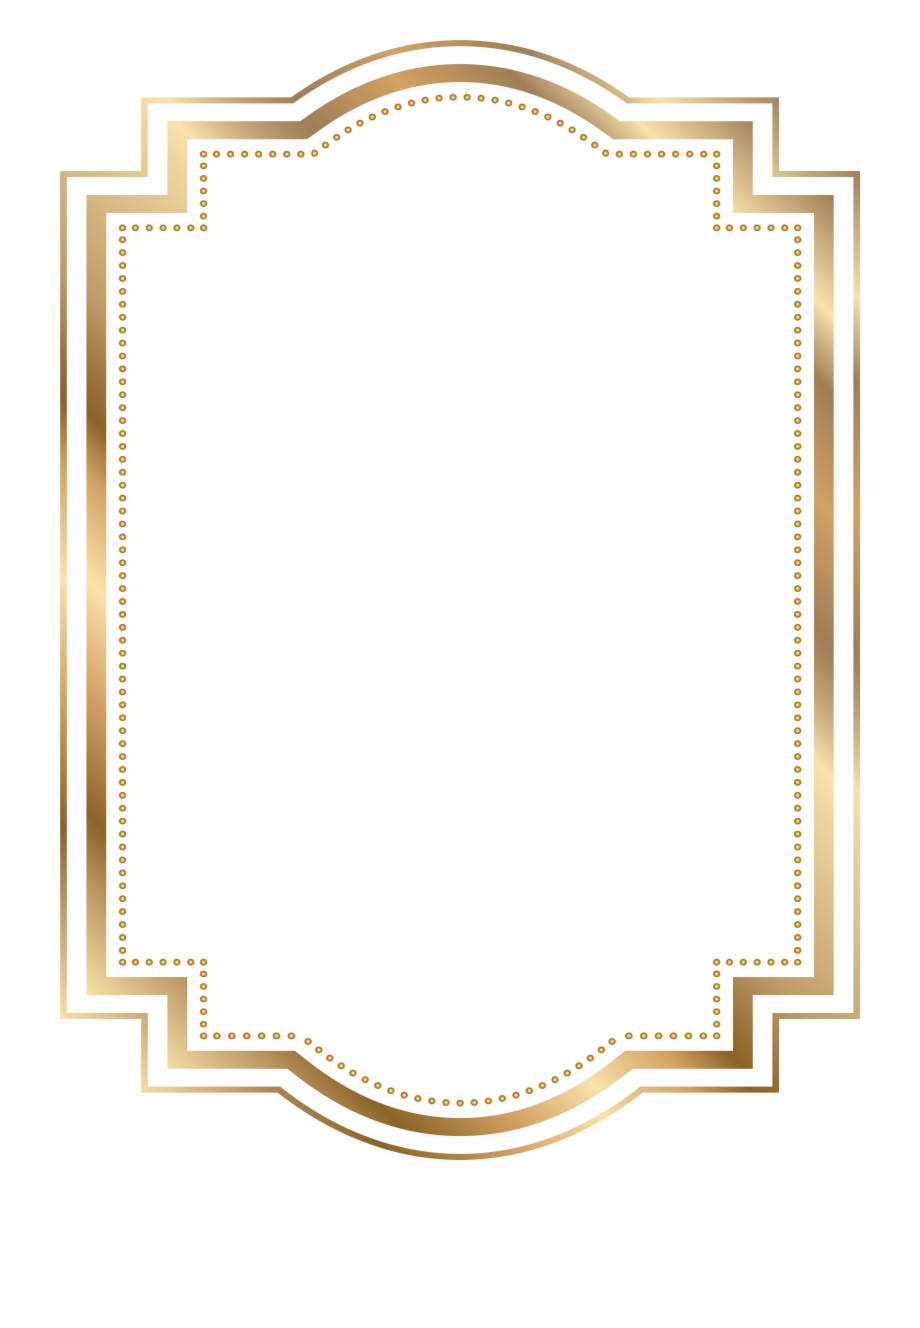 Pink and gold border clipart graphic freeuse library Gold Frame Border Png - Golden Border Clip Art Png Free PNG ... graphic freeuse library